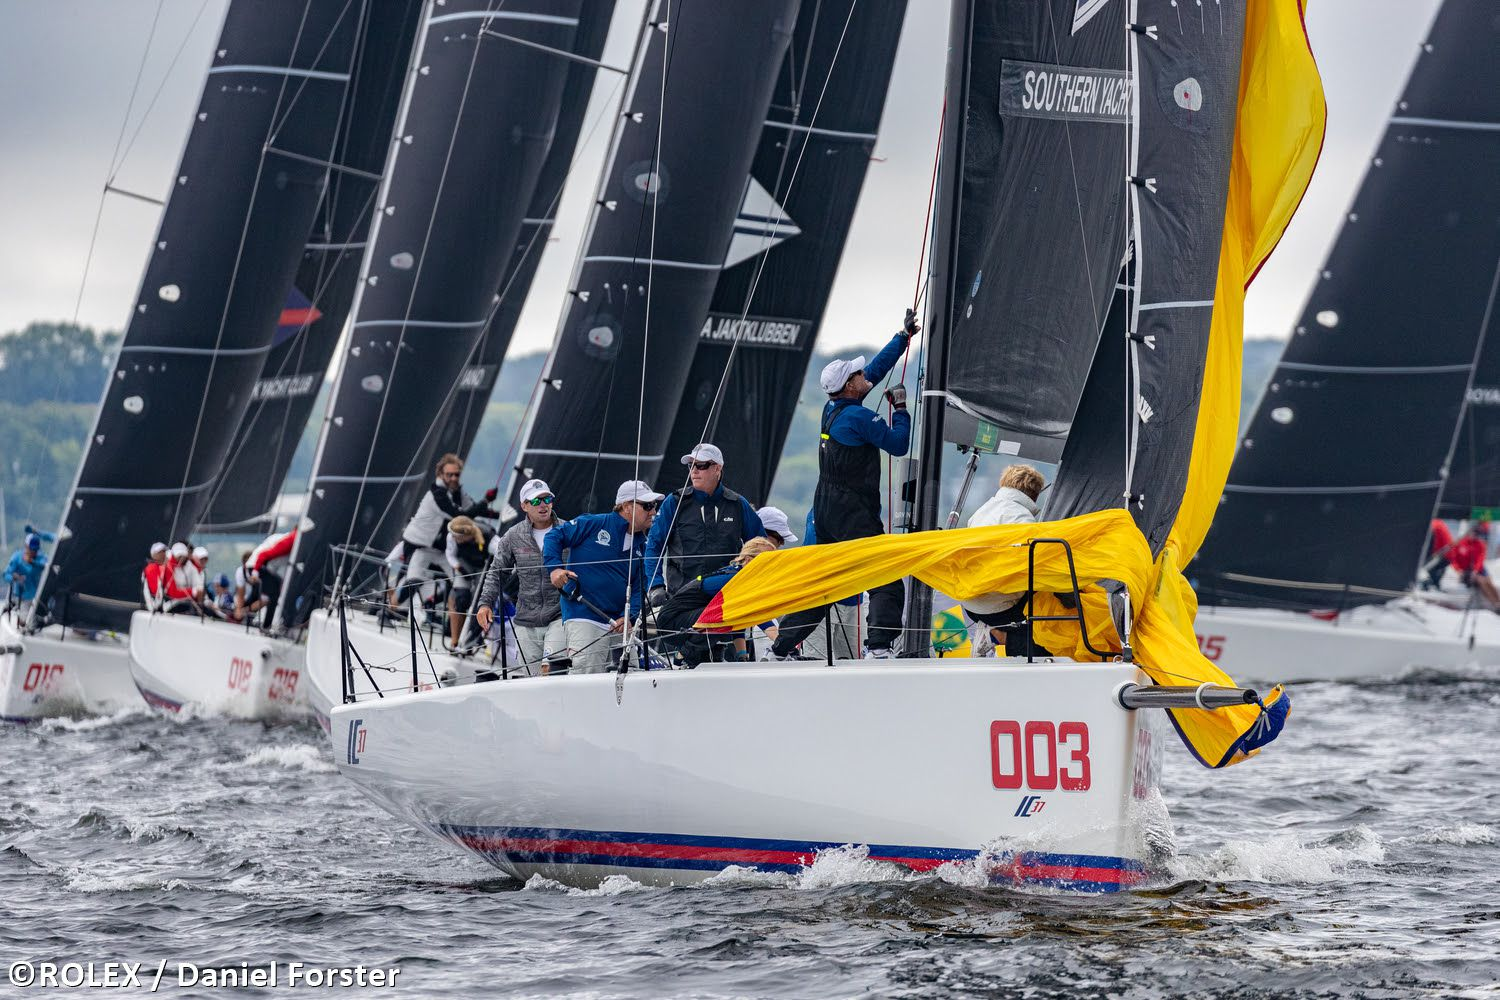 On the final day of the Rolex New York YC Invitational Regatta, Southern YC's team sailed a calculated race to secure its second regatta win.